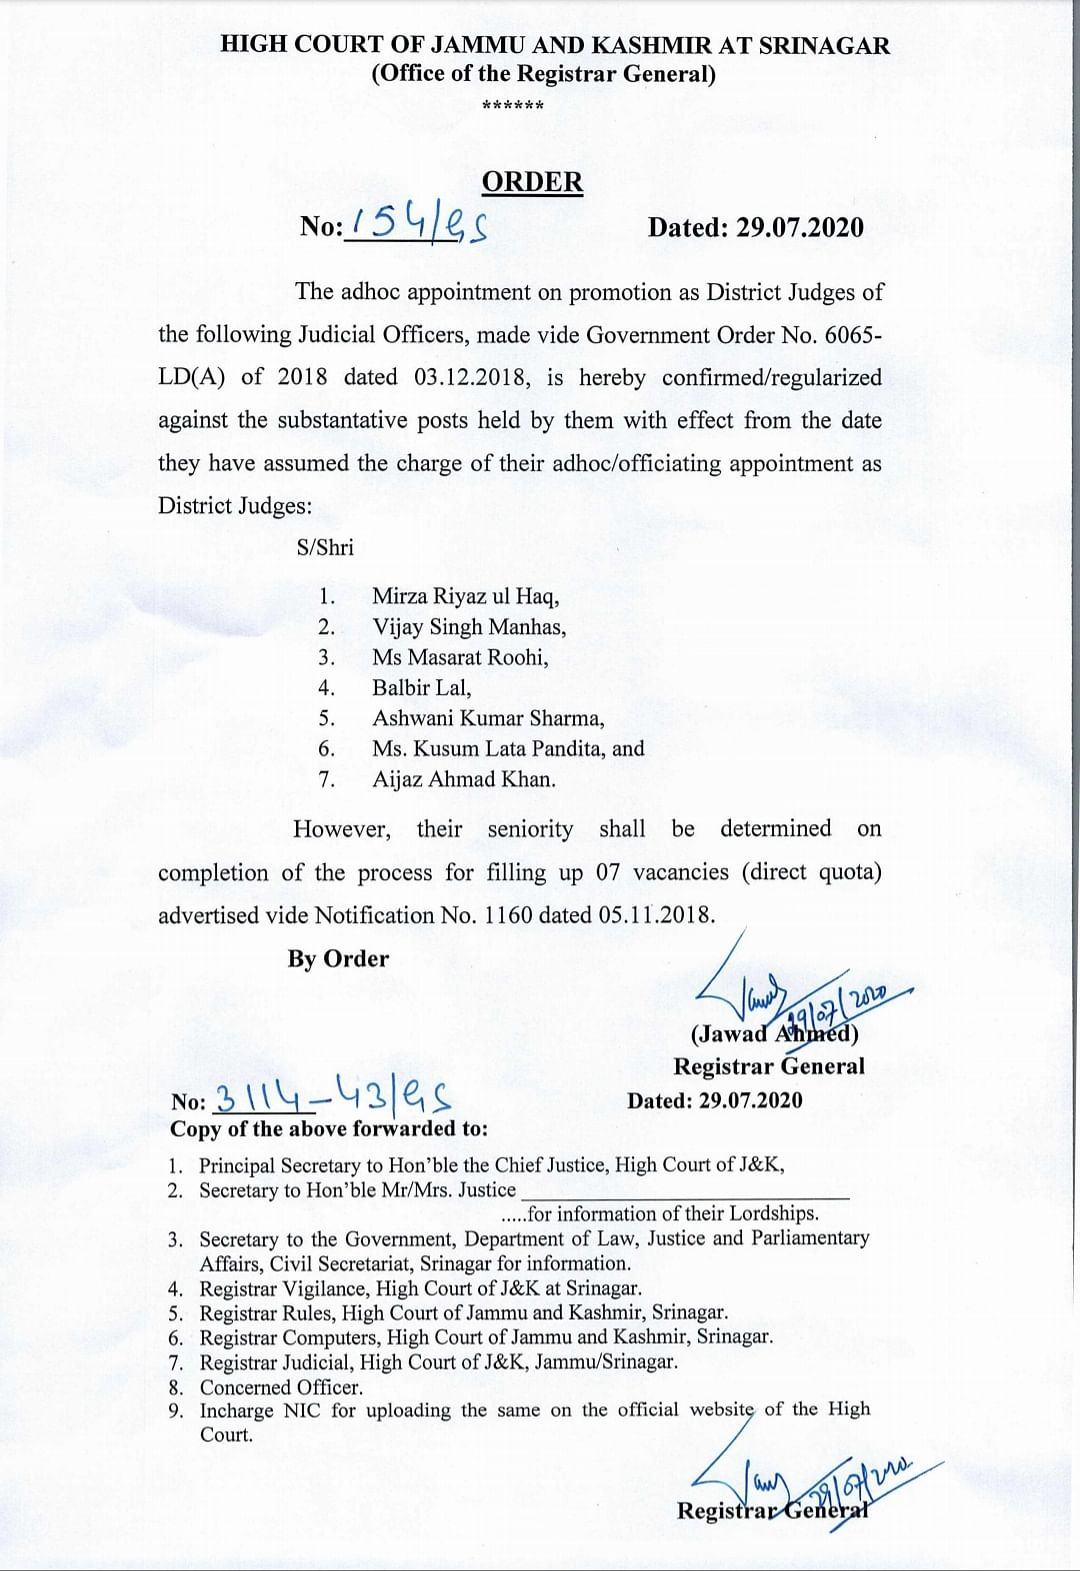 The order issued by the J&K High Court